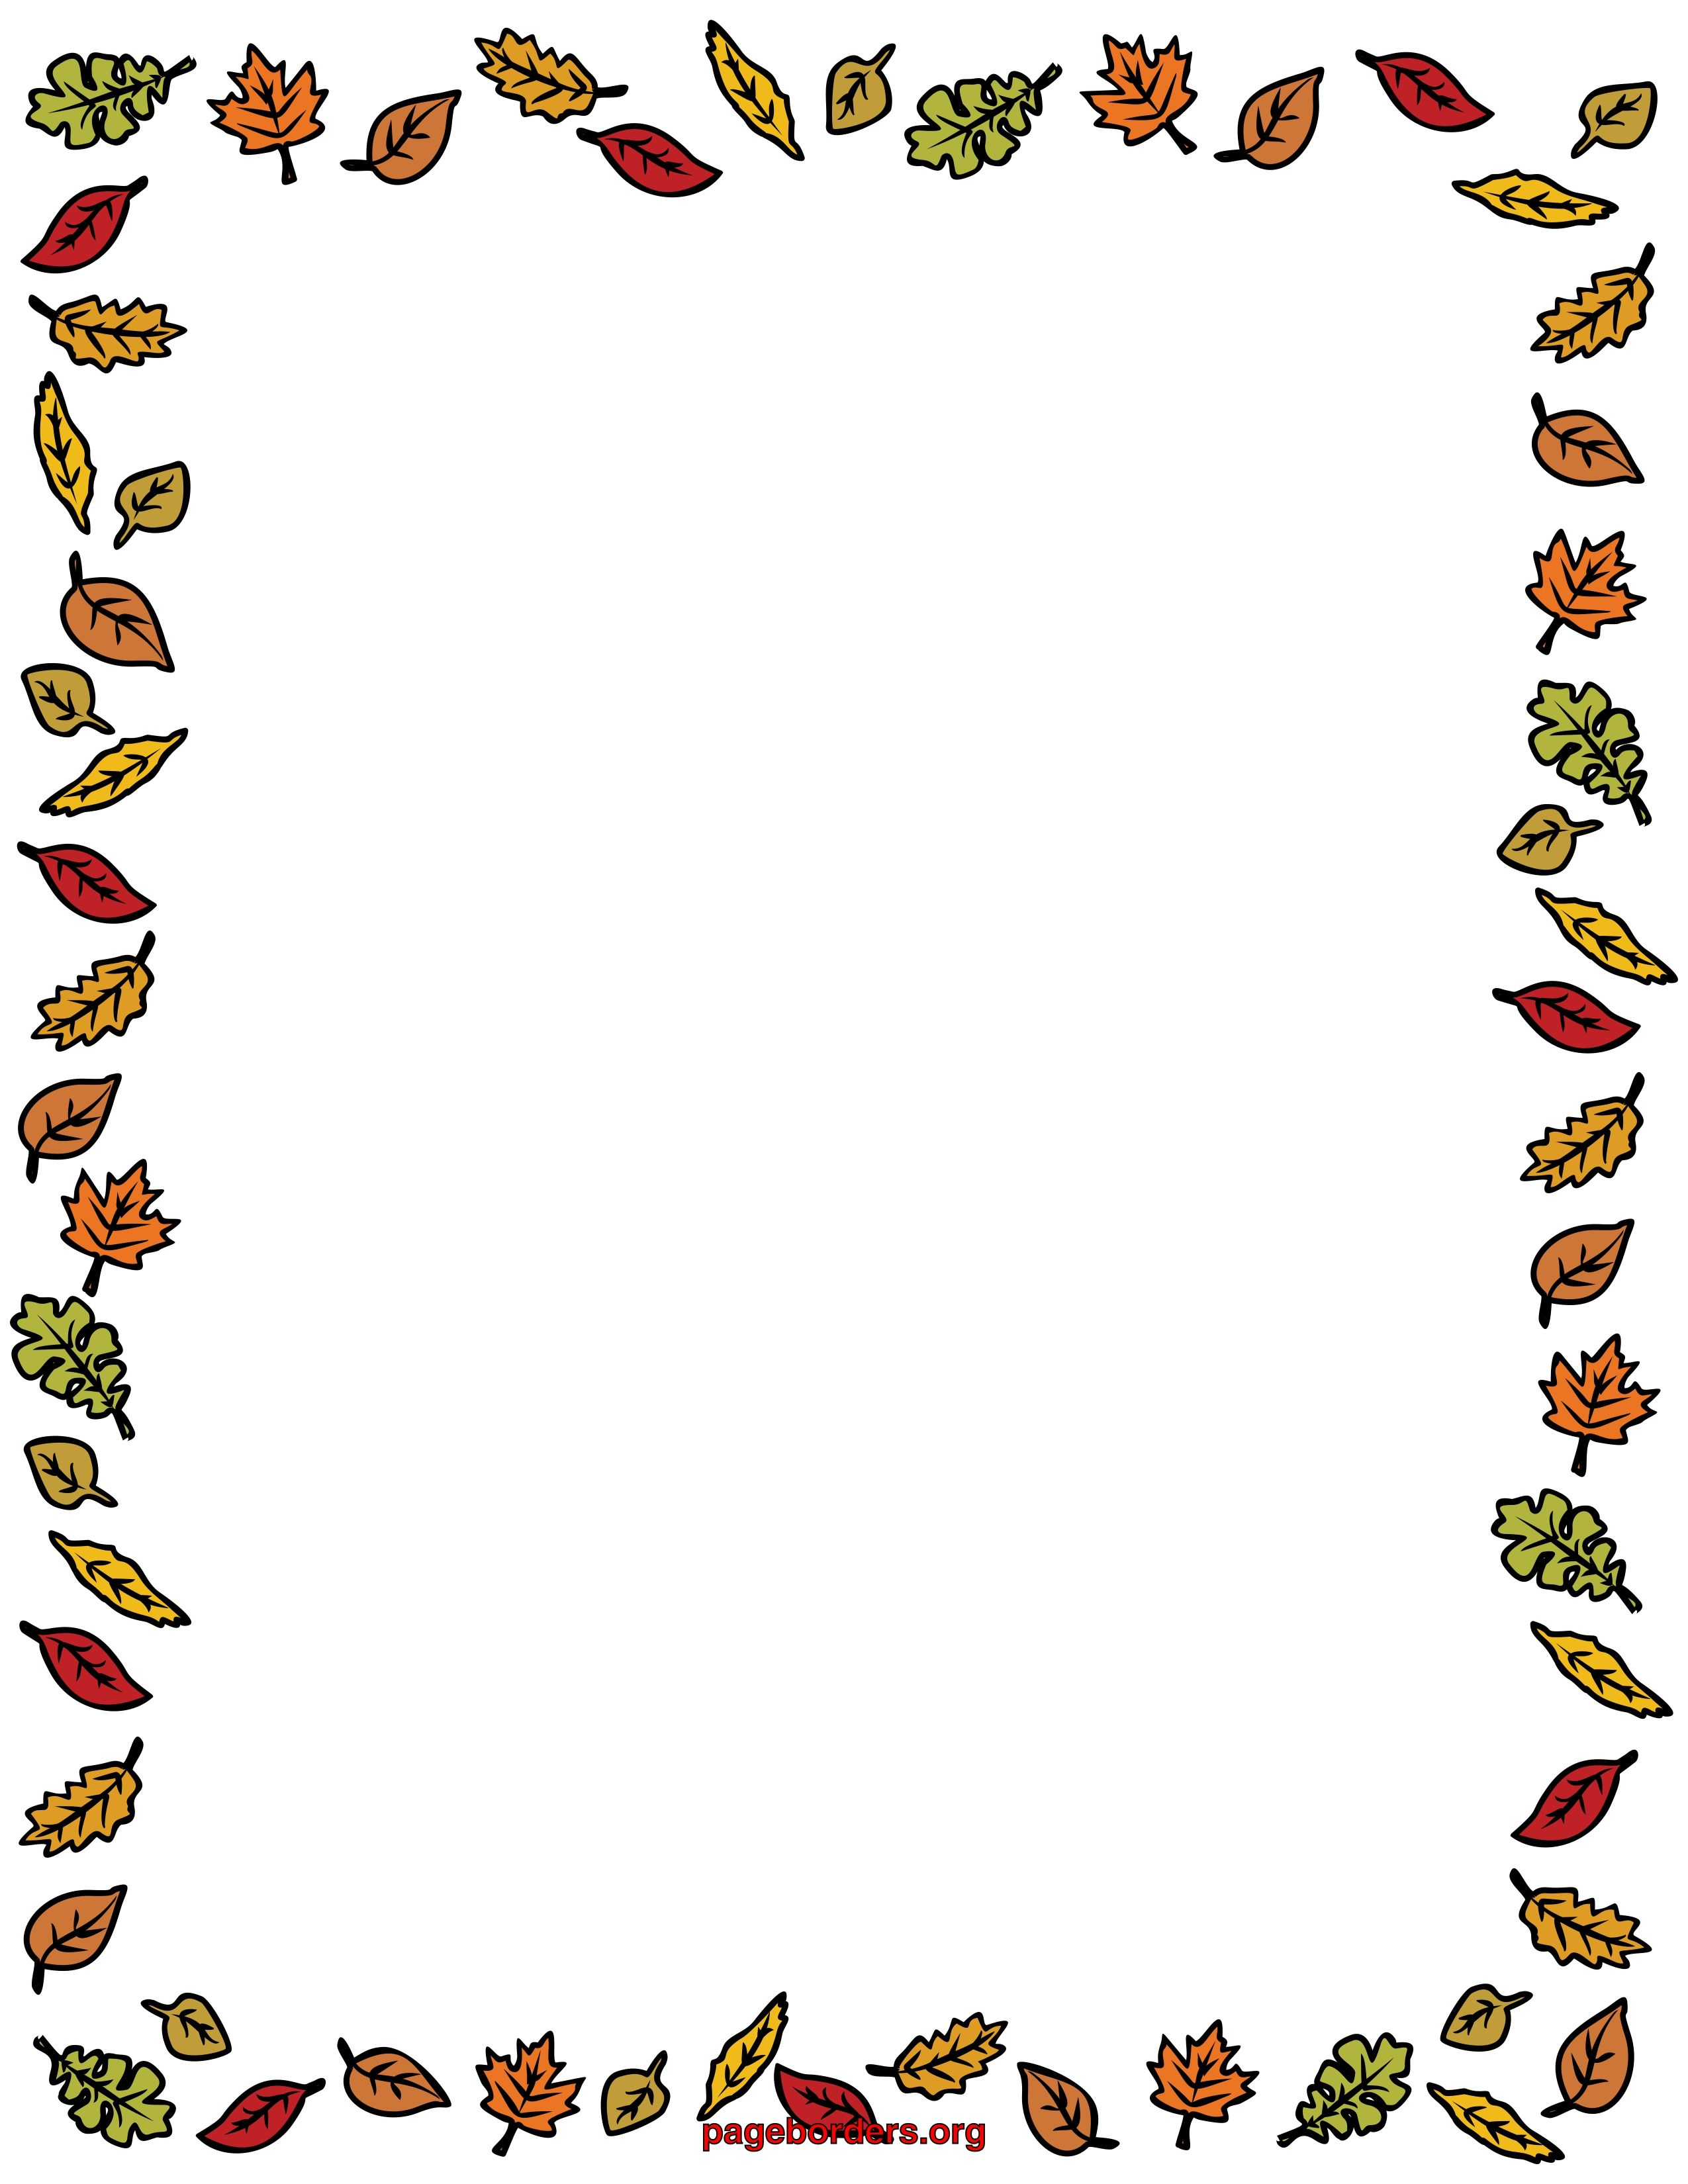 47+ Fall leaves page border clipart ideas